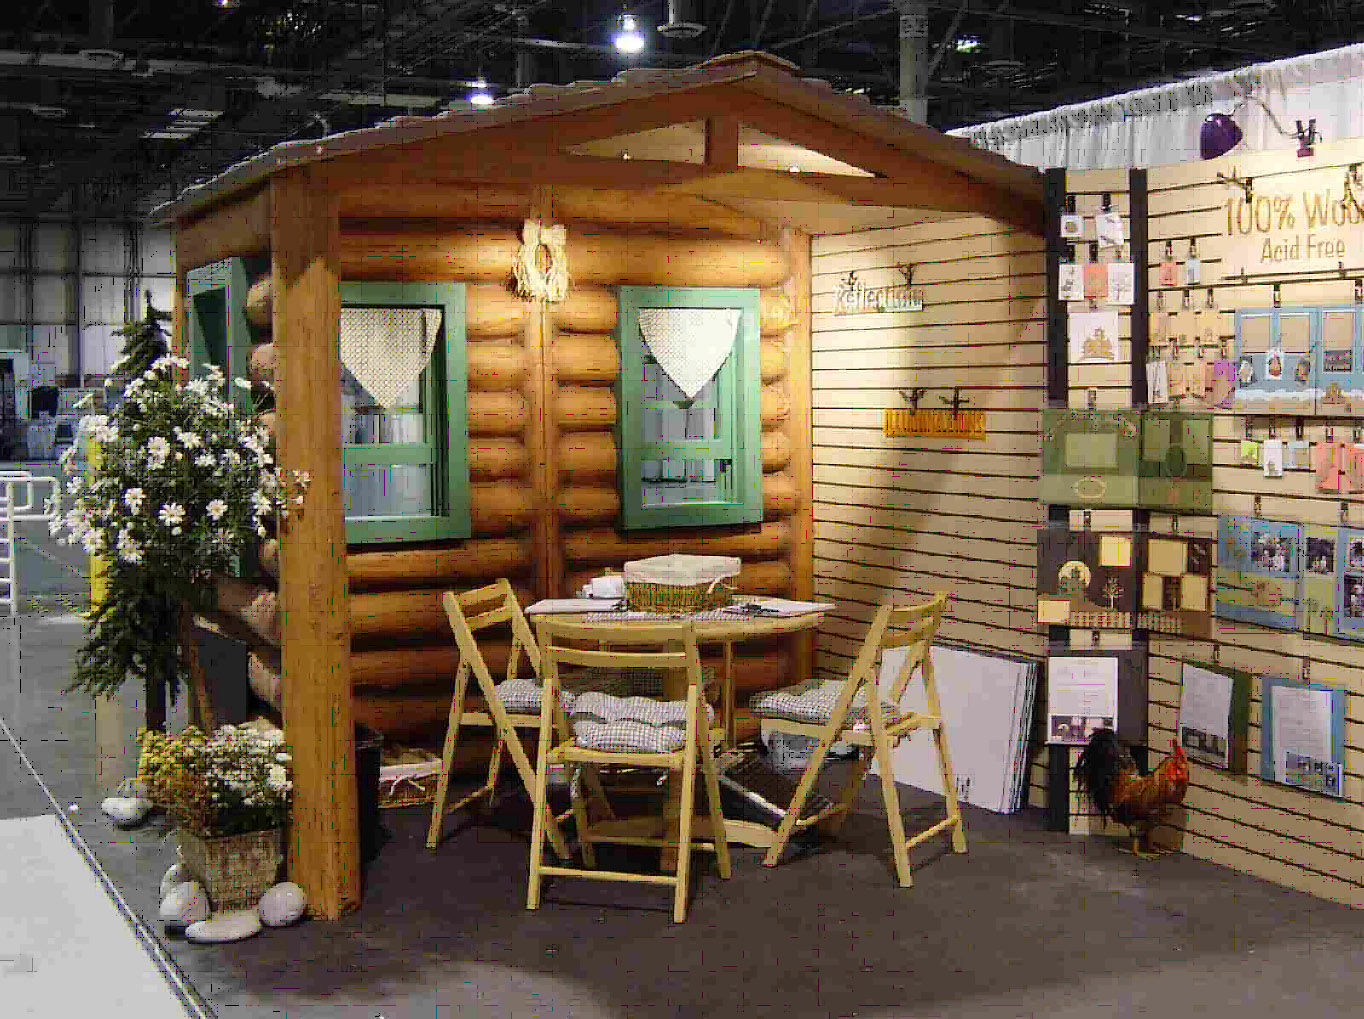 Unique Log Cabin 10' x 20' Booth | Usedbooths